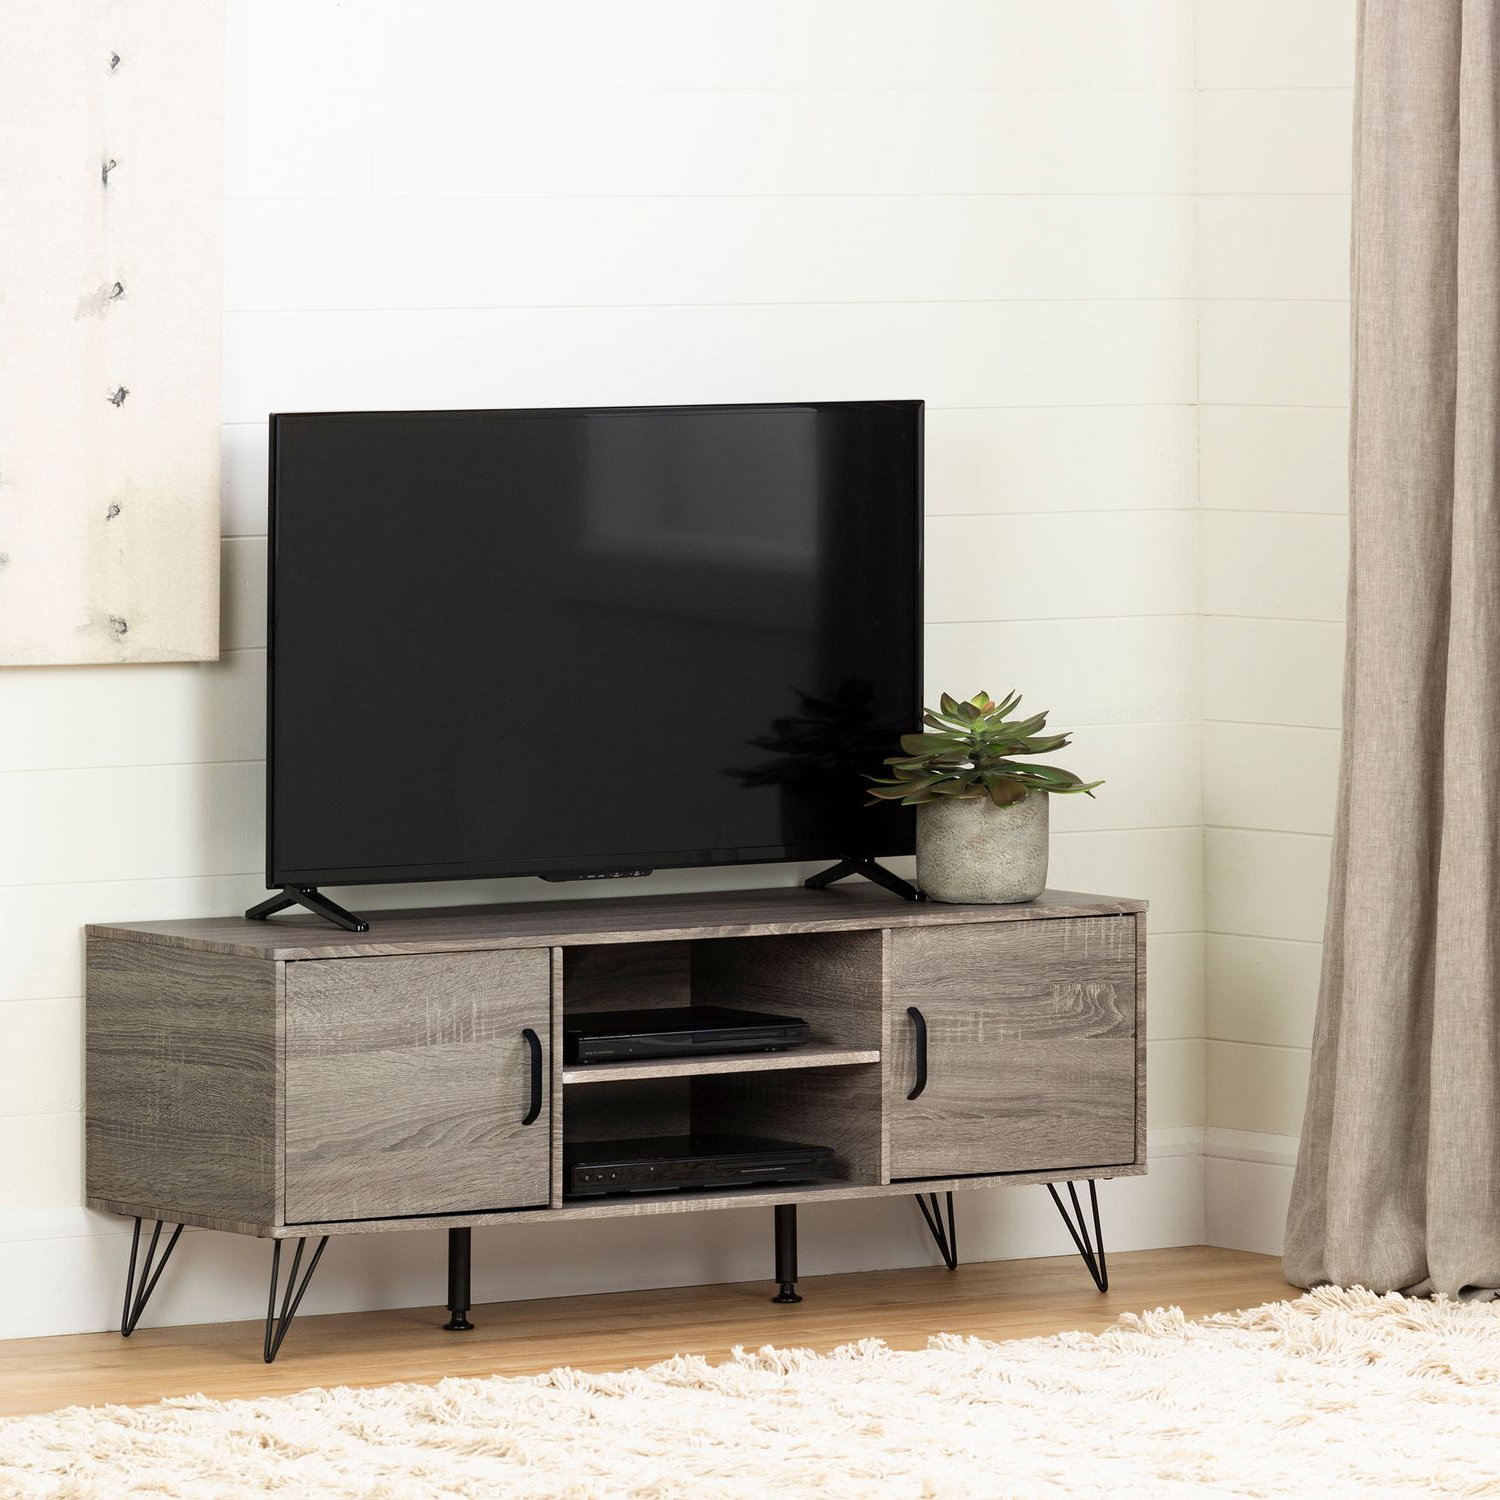 South Shore Evane Tv Stand With Doors For Tvs Up To 55 Inside South Shore Evane Tv Stands With Doors In Oak Camel (View 5 of 20)